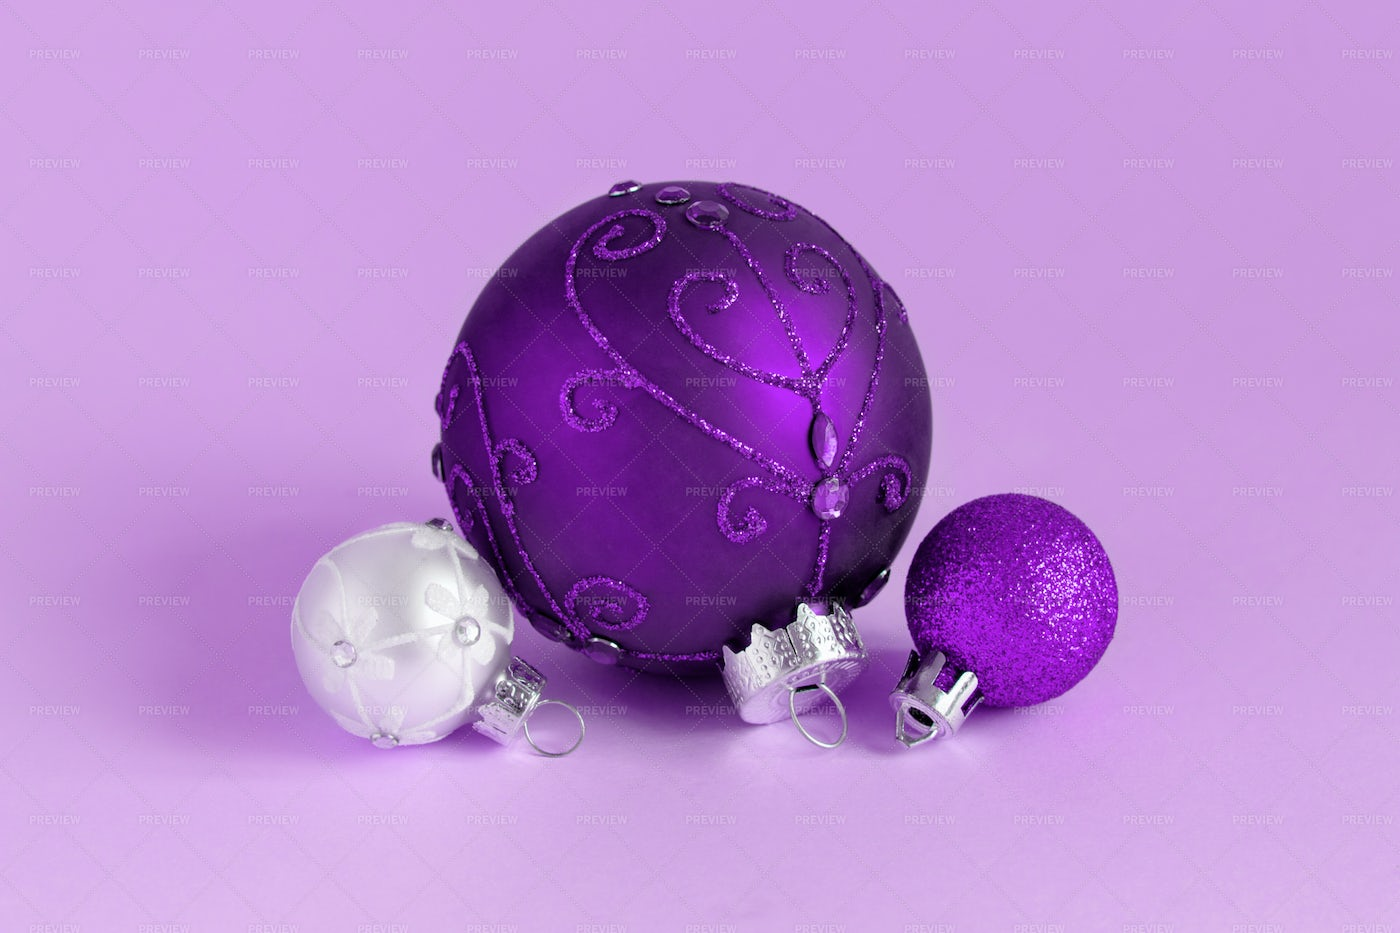 Purple And Silver Baubles: Stock Photos